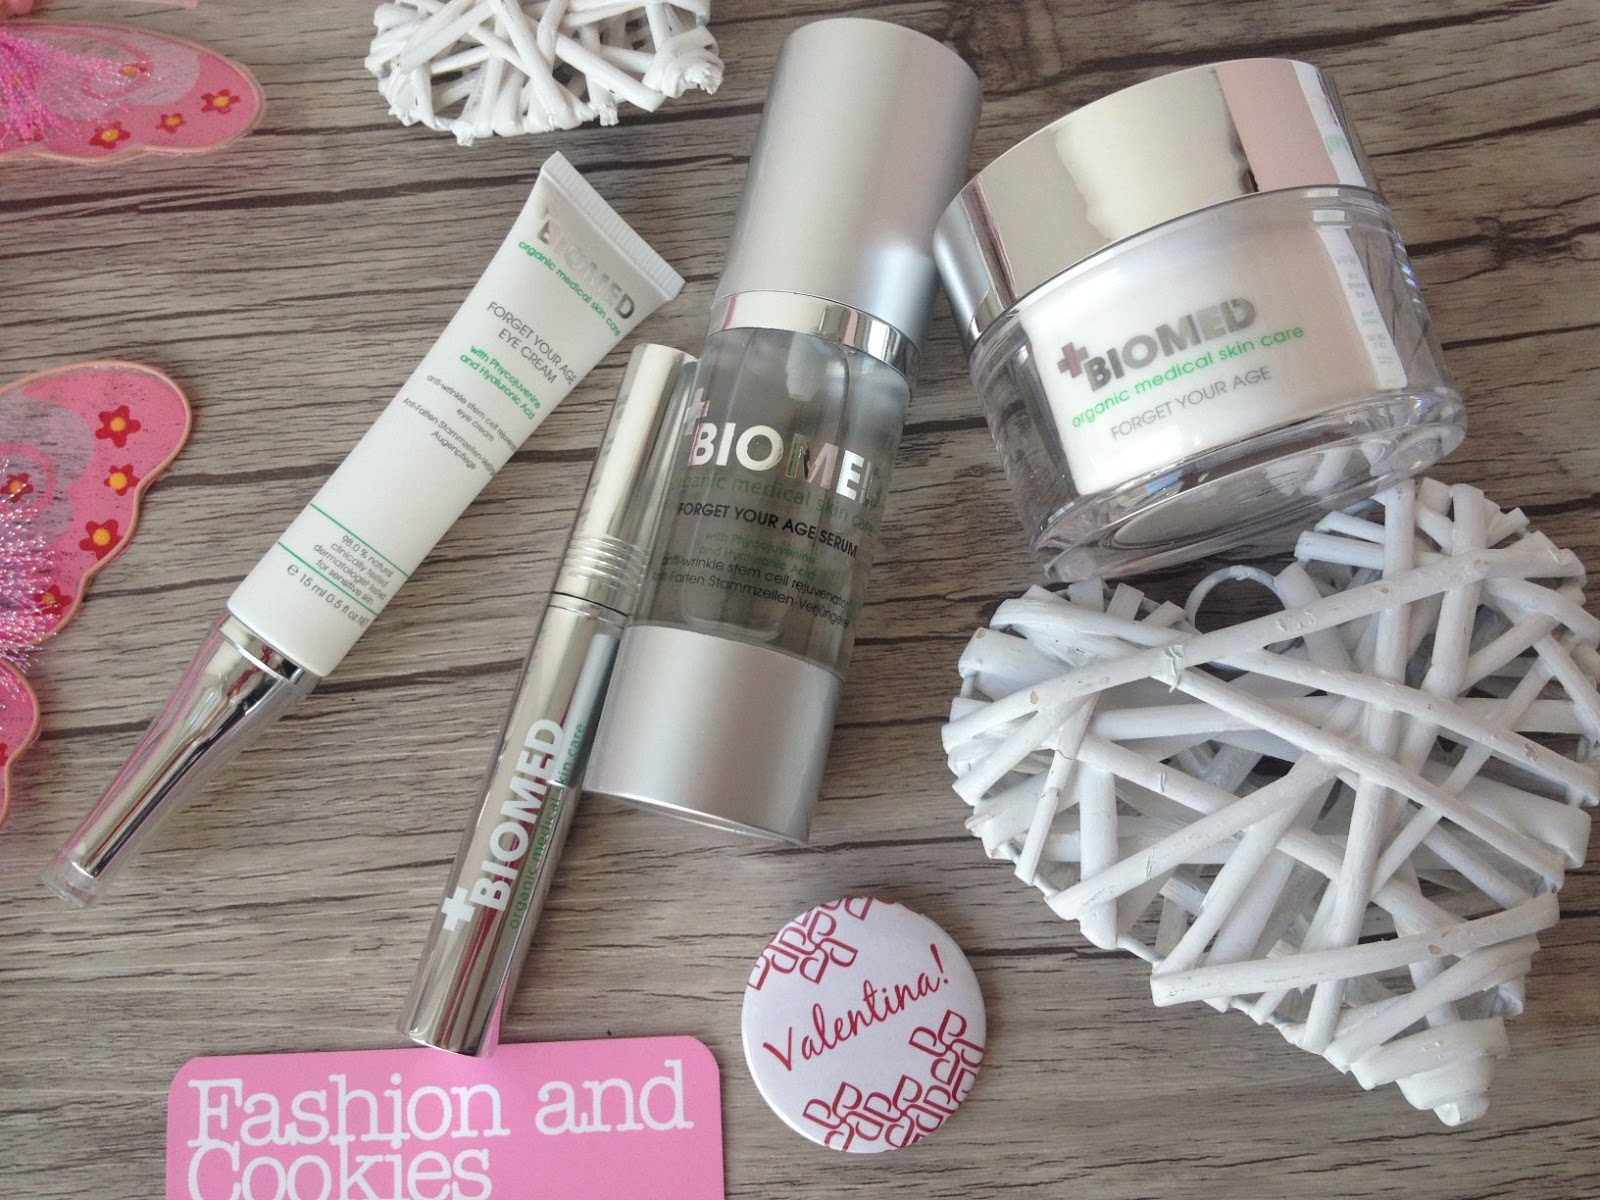 Biomed Organic Skincare review, Biomed Forget your age cream and serum presentation and review on Fashion and Cookies fashion blog